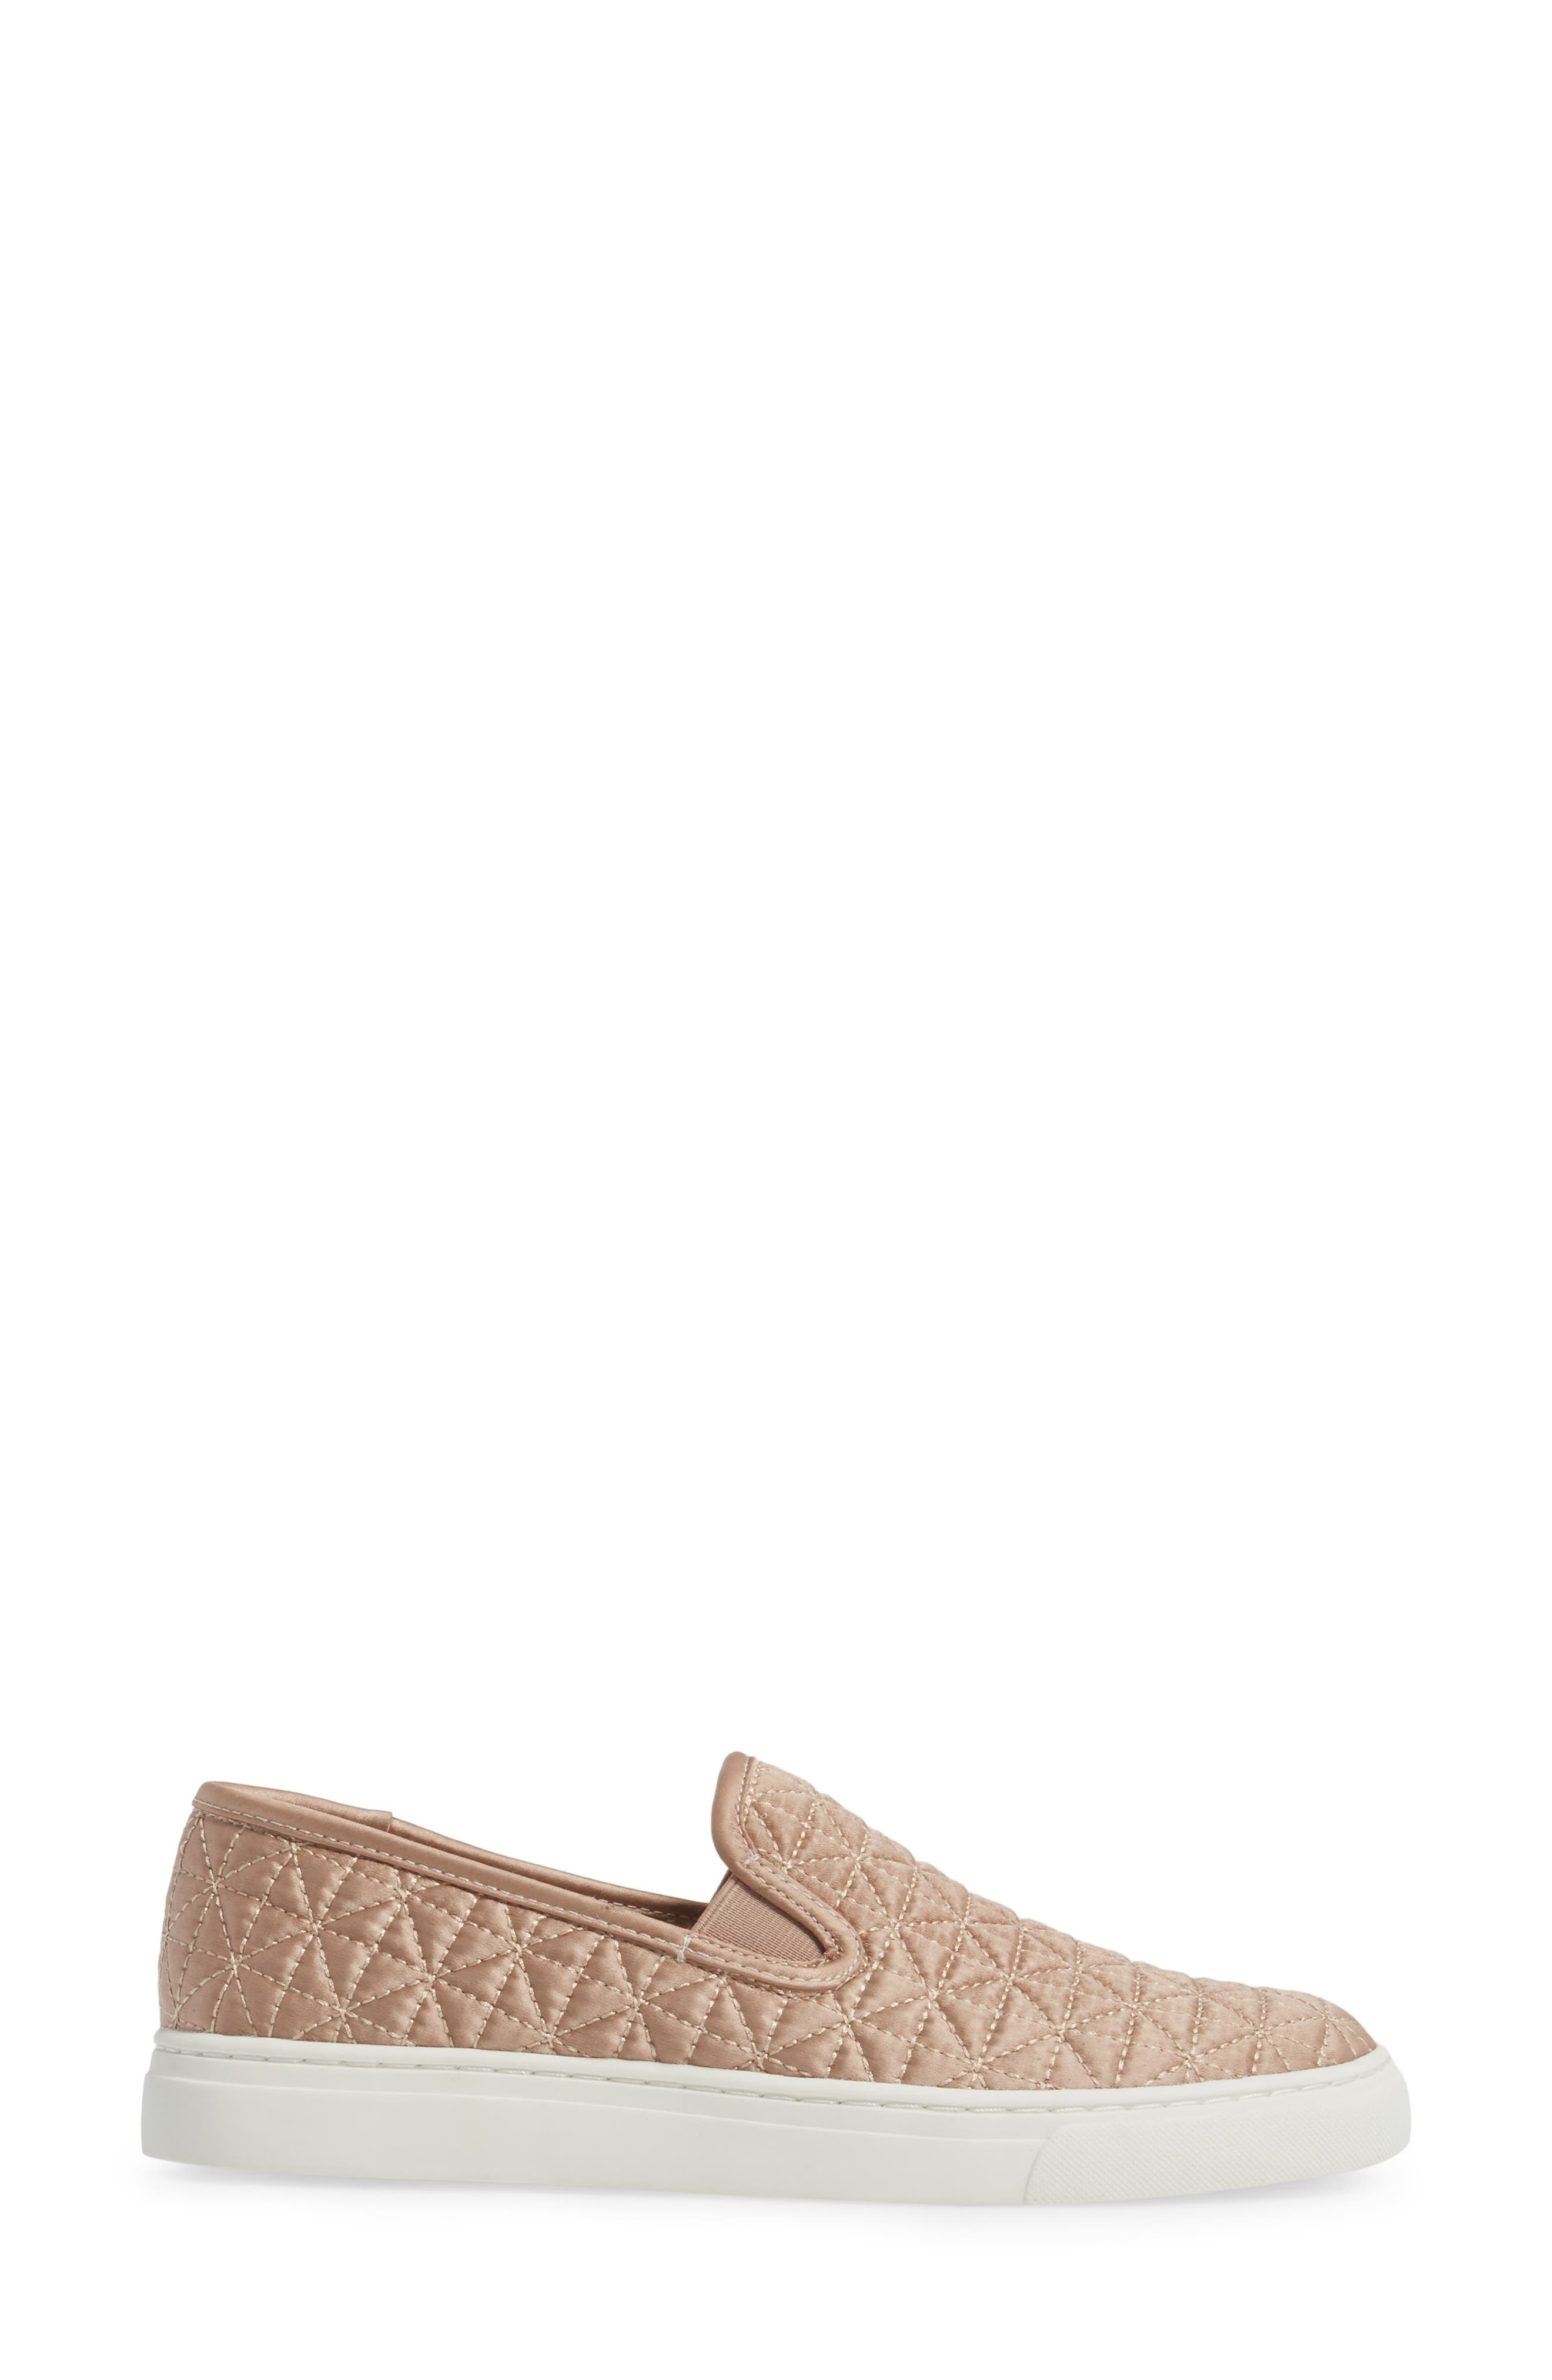 Alternate Image 3  - Vince Camuto Billena Quilted Slip-On Sneaker (Women)